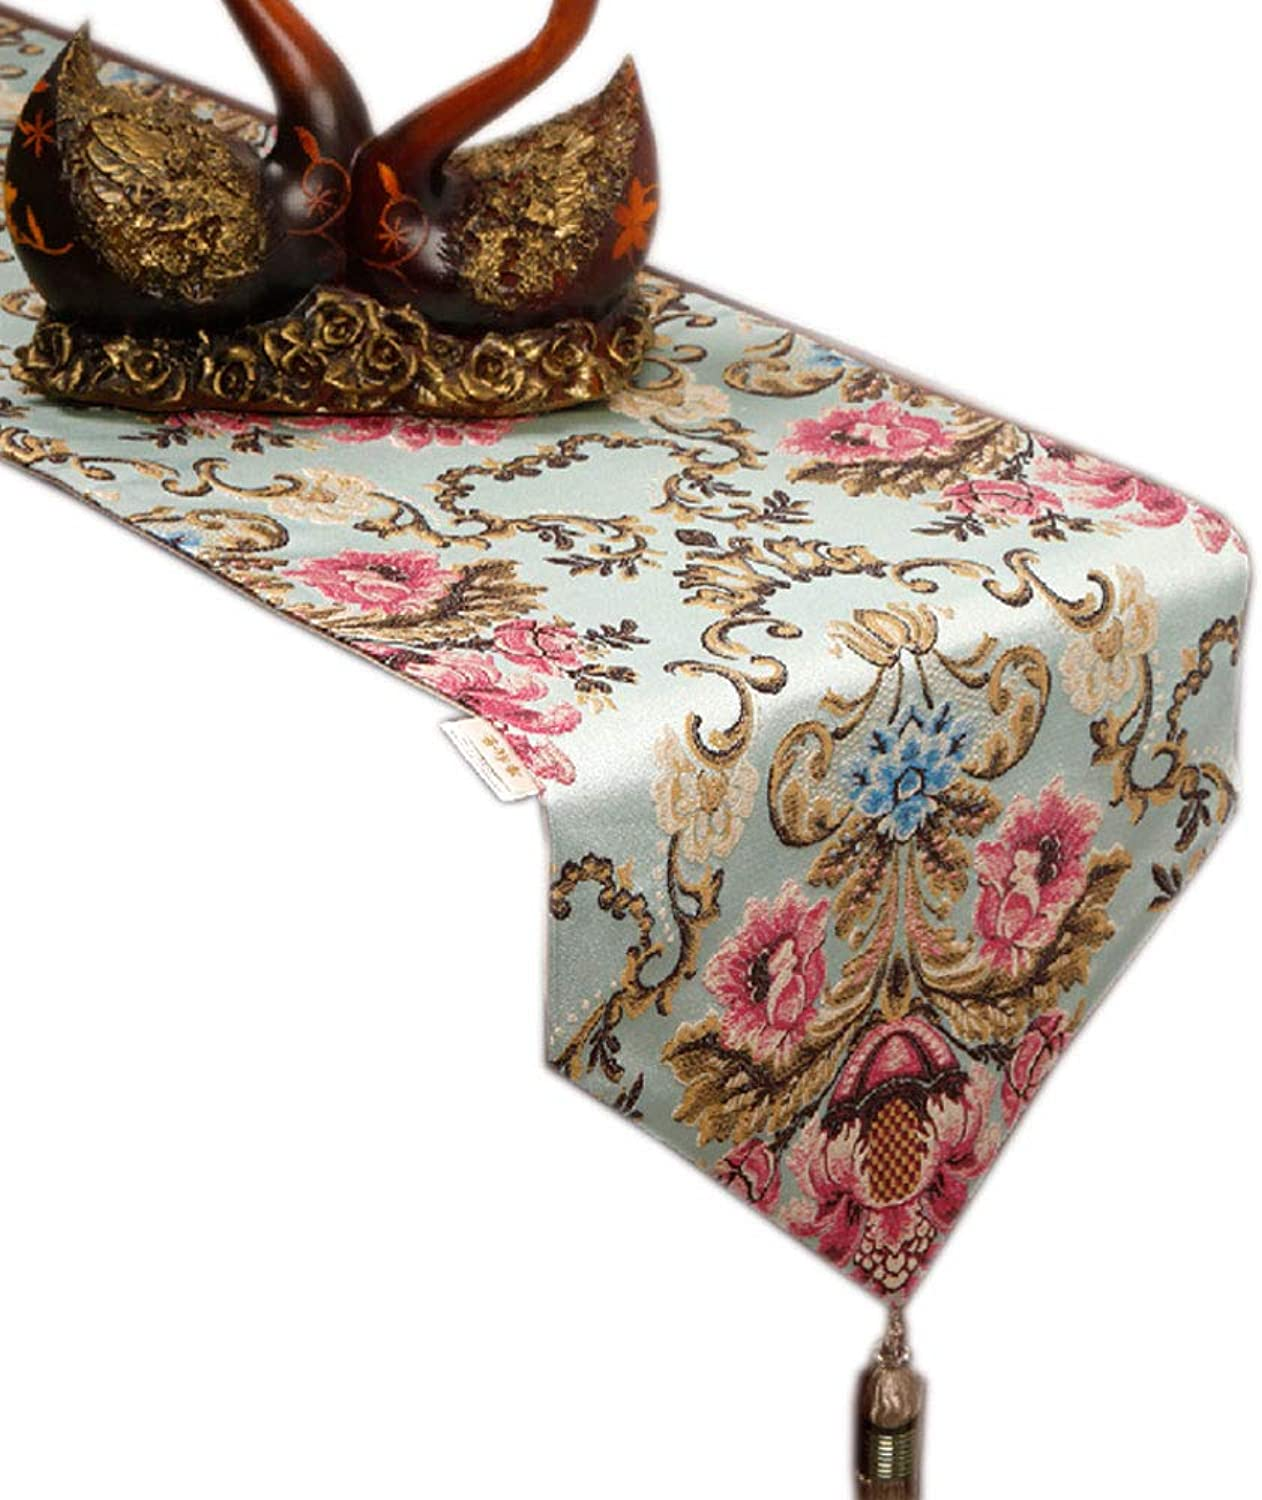 Xiao Mi Guo Ji Table Flag Garden Table Flag Flag Table Coffee Table Flag Bed Flag Home Coffee Table Decoration TV Cabinet Cover Cloth Towel Home Fabric Decoration Table flag (Size   33x180cm)